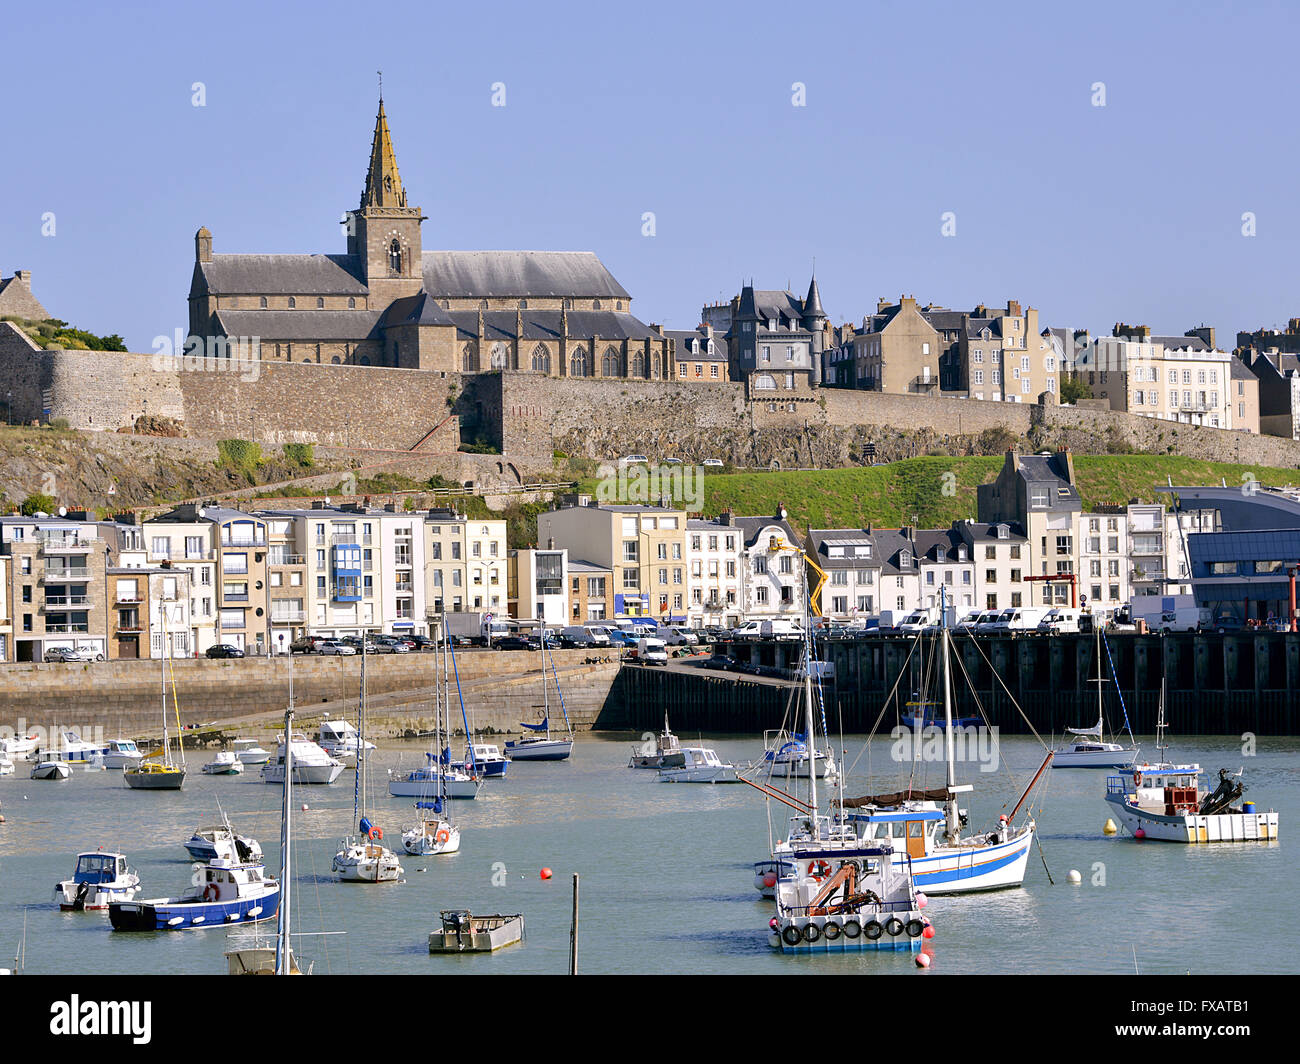 Port of Granville in France Stock Photo: 102271541 - Alamy